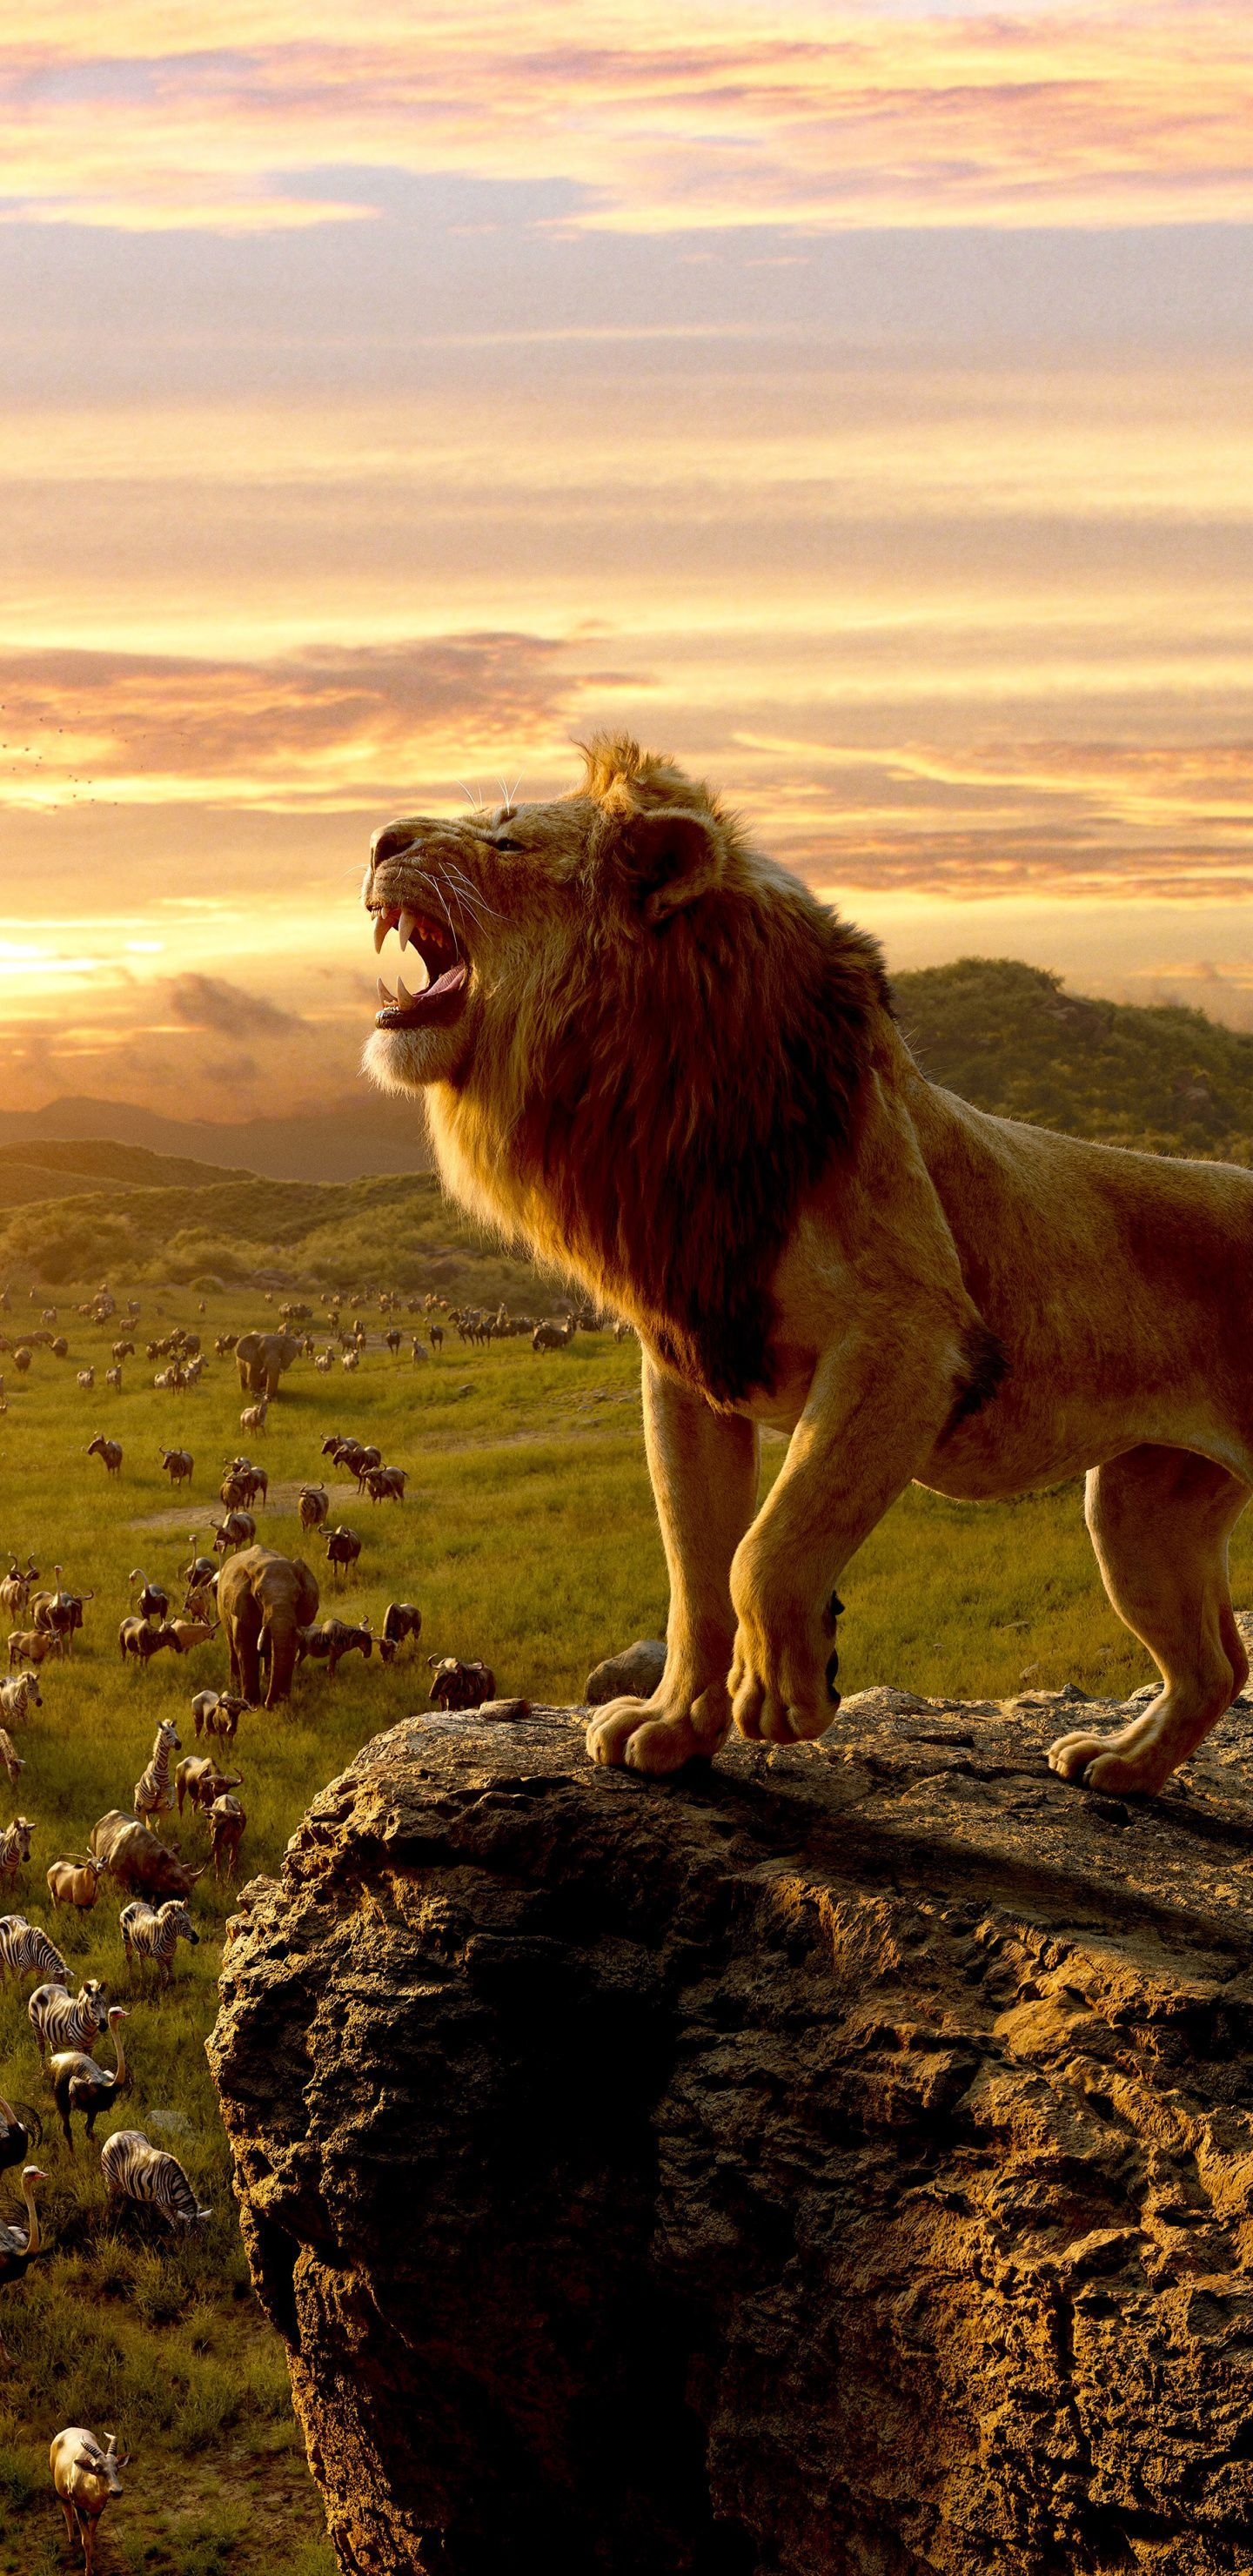 1440x2960 The Lion King, king of jungle, movie 2019, Simba wallpaper various kinds of animals in wild life by huntingwe as humans must be able to preserve and preserve nature and its contents for a better life